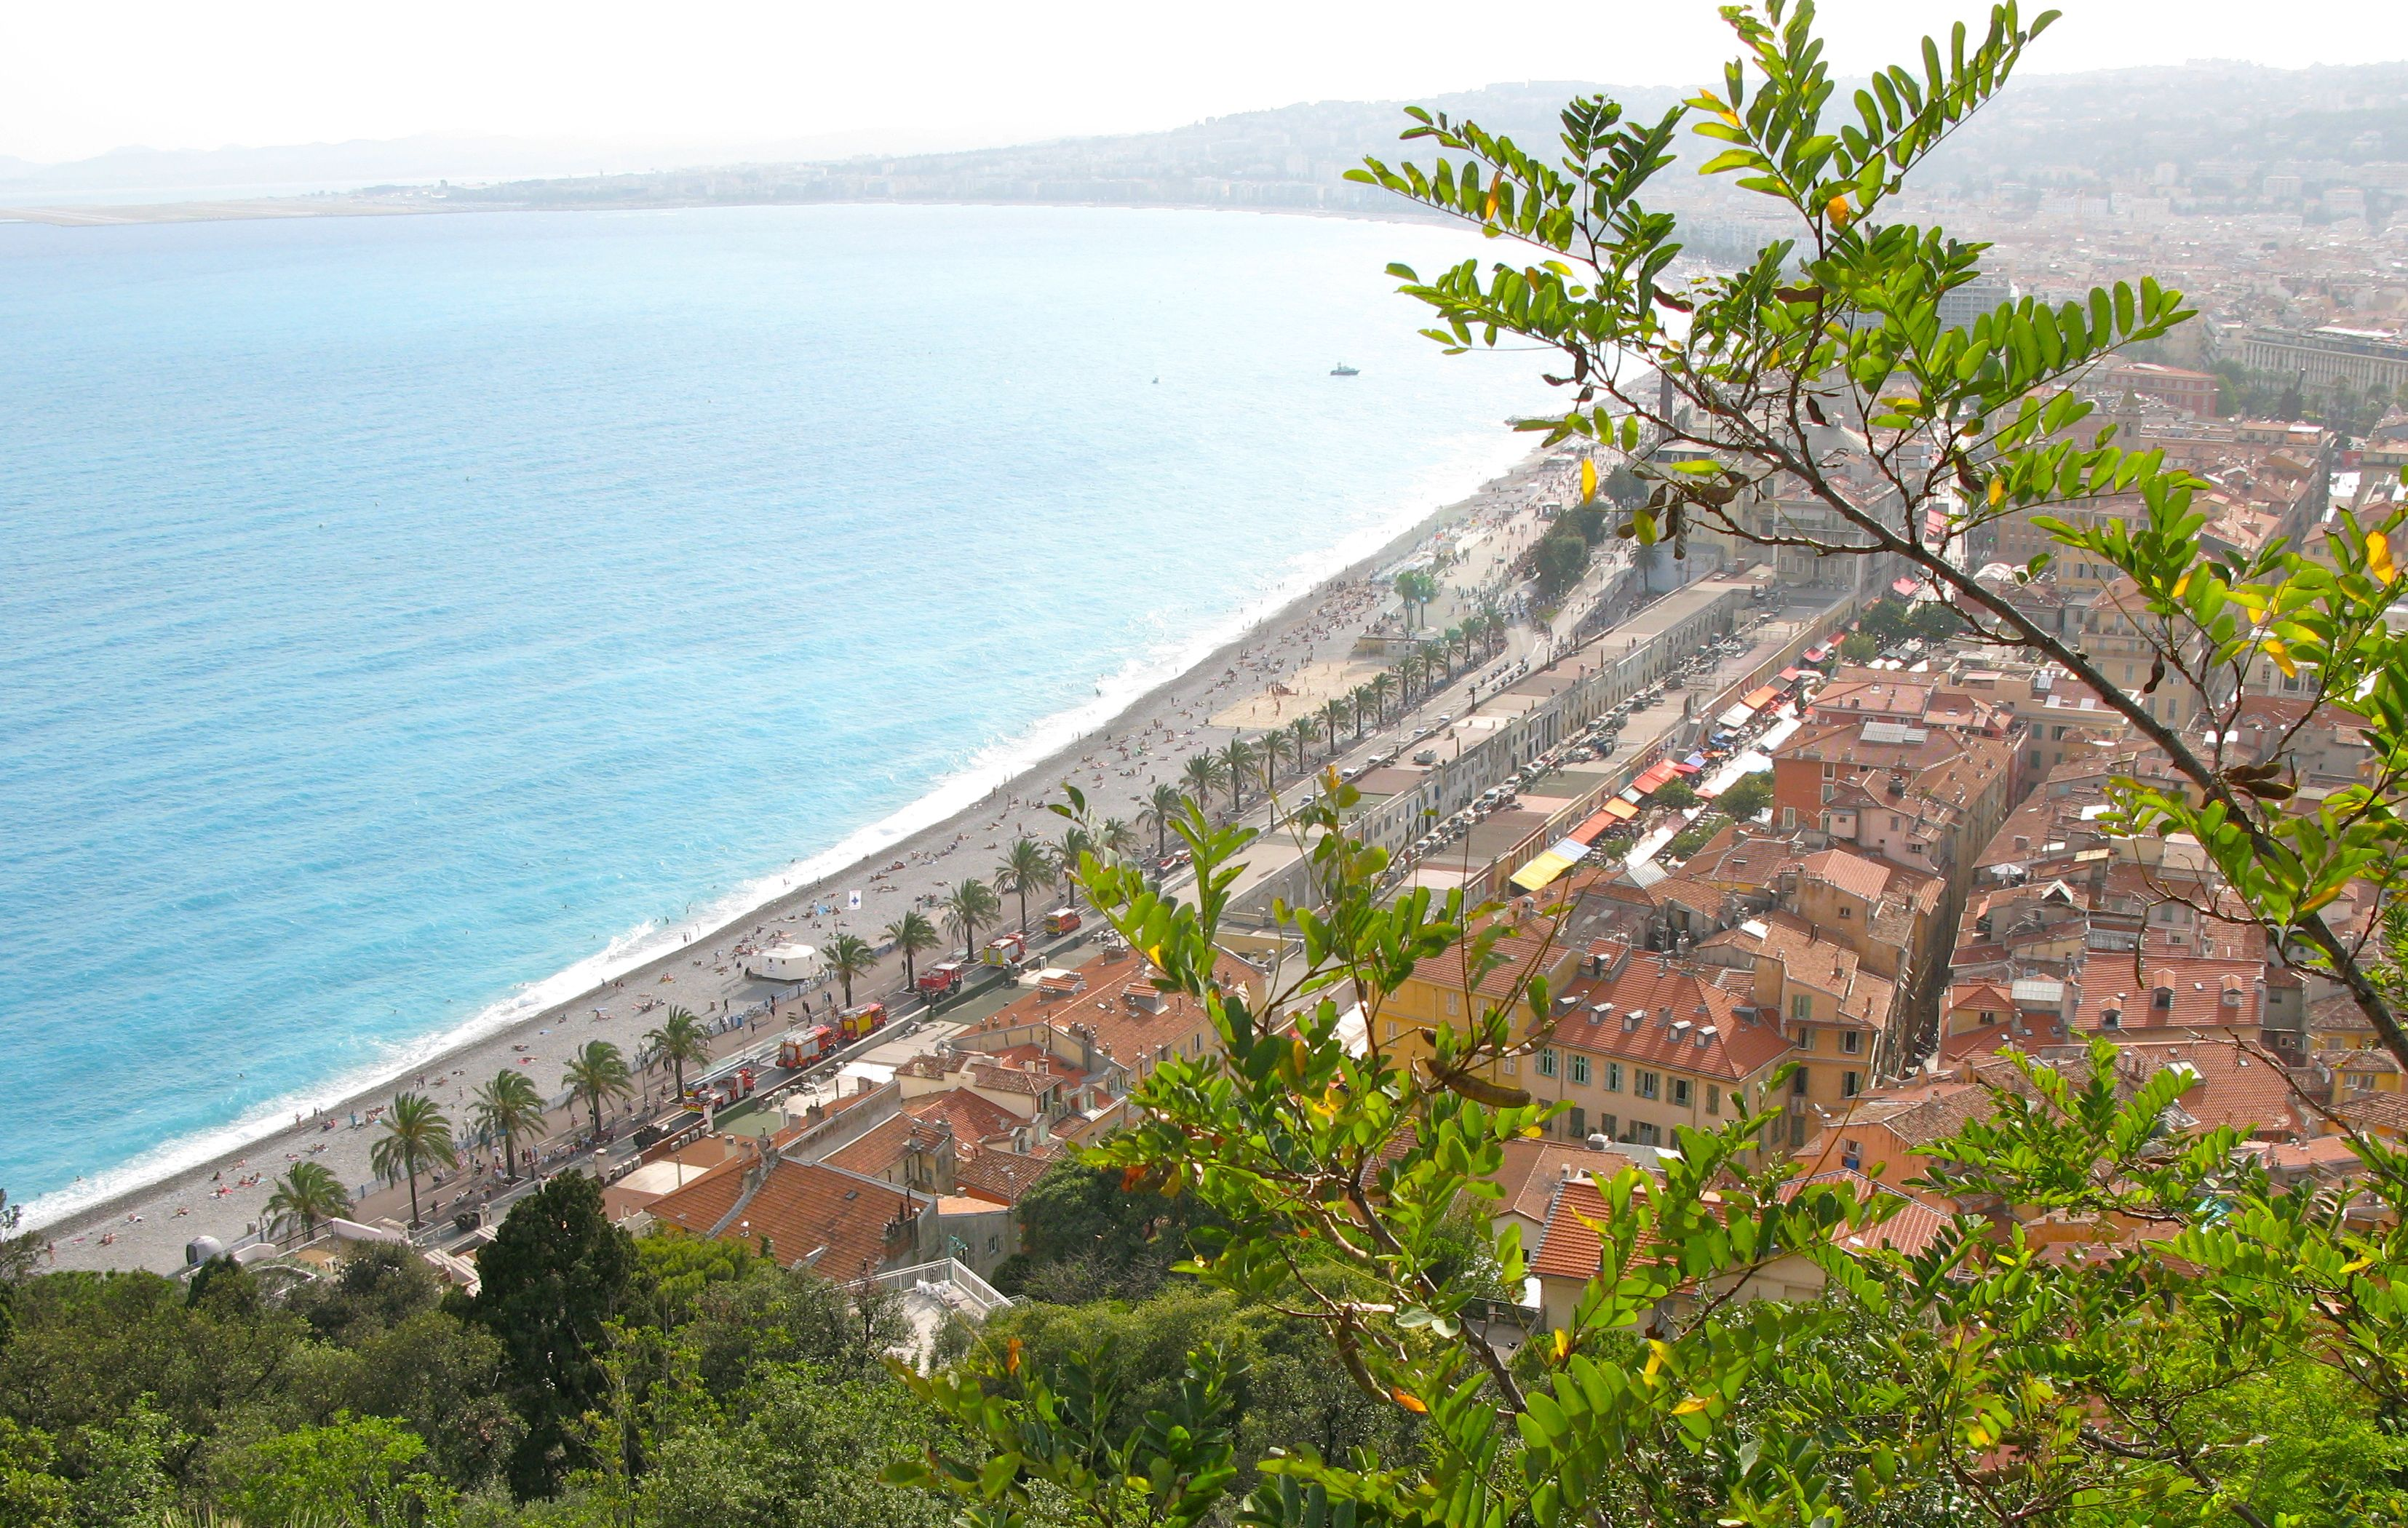 Aerial view of the beach in Nice